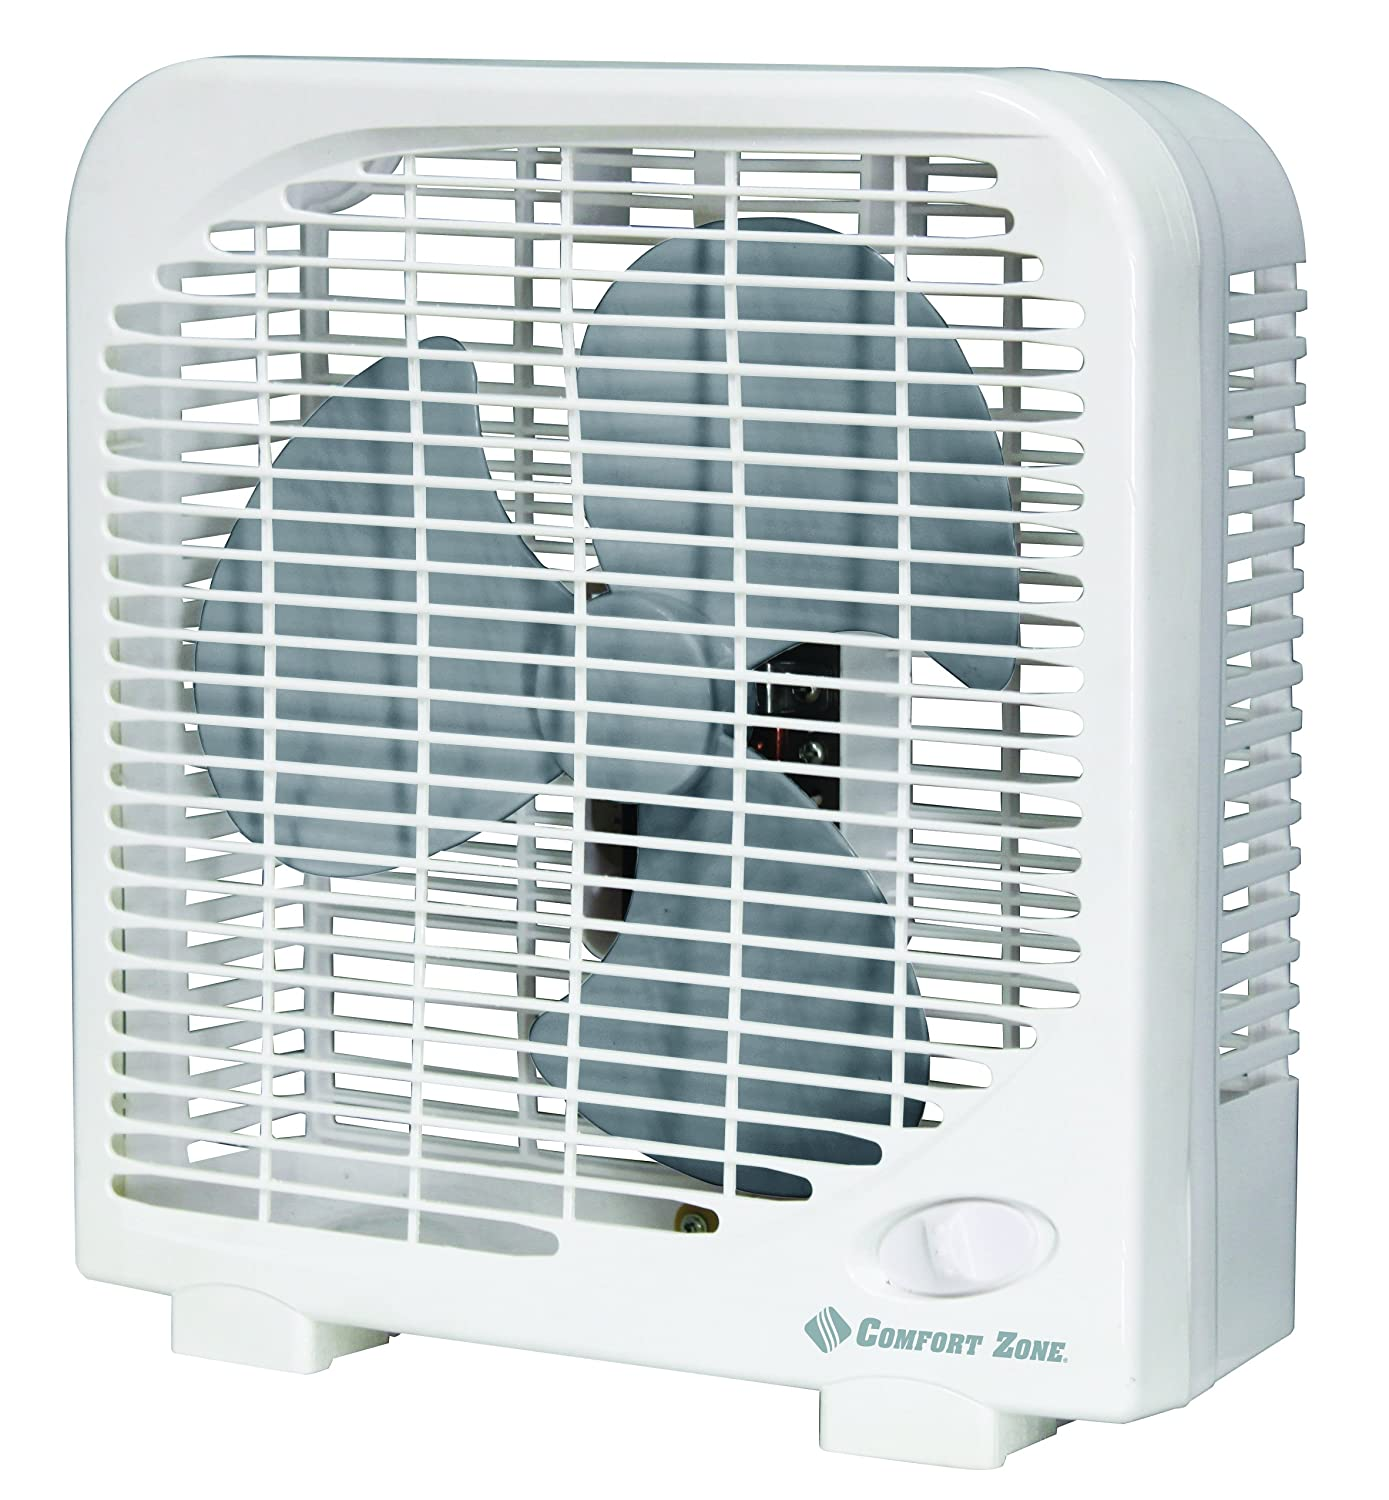 heater canadian heating canada tire and zone heaters reviews comfort cooling parts recall comforter air infrared